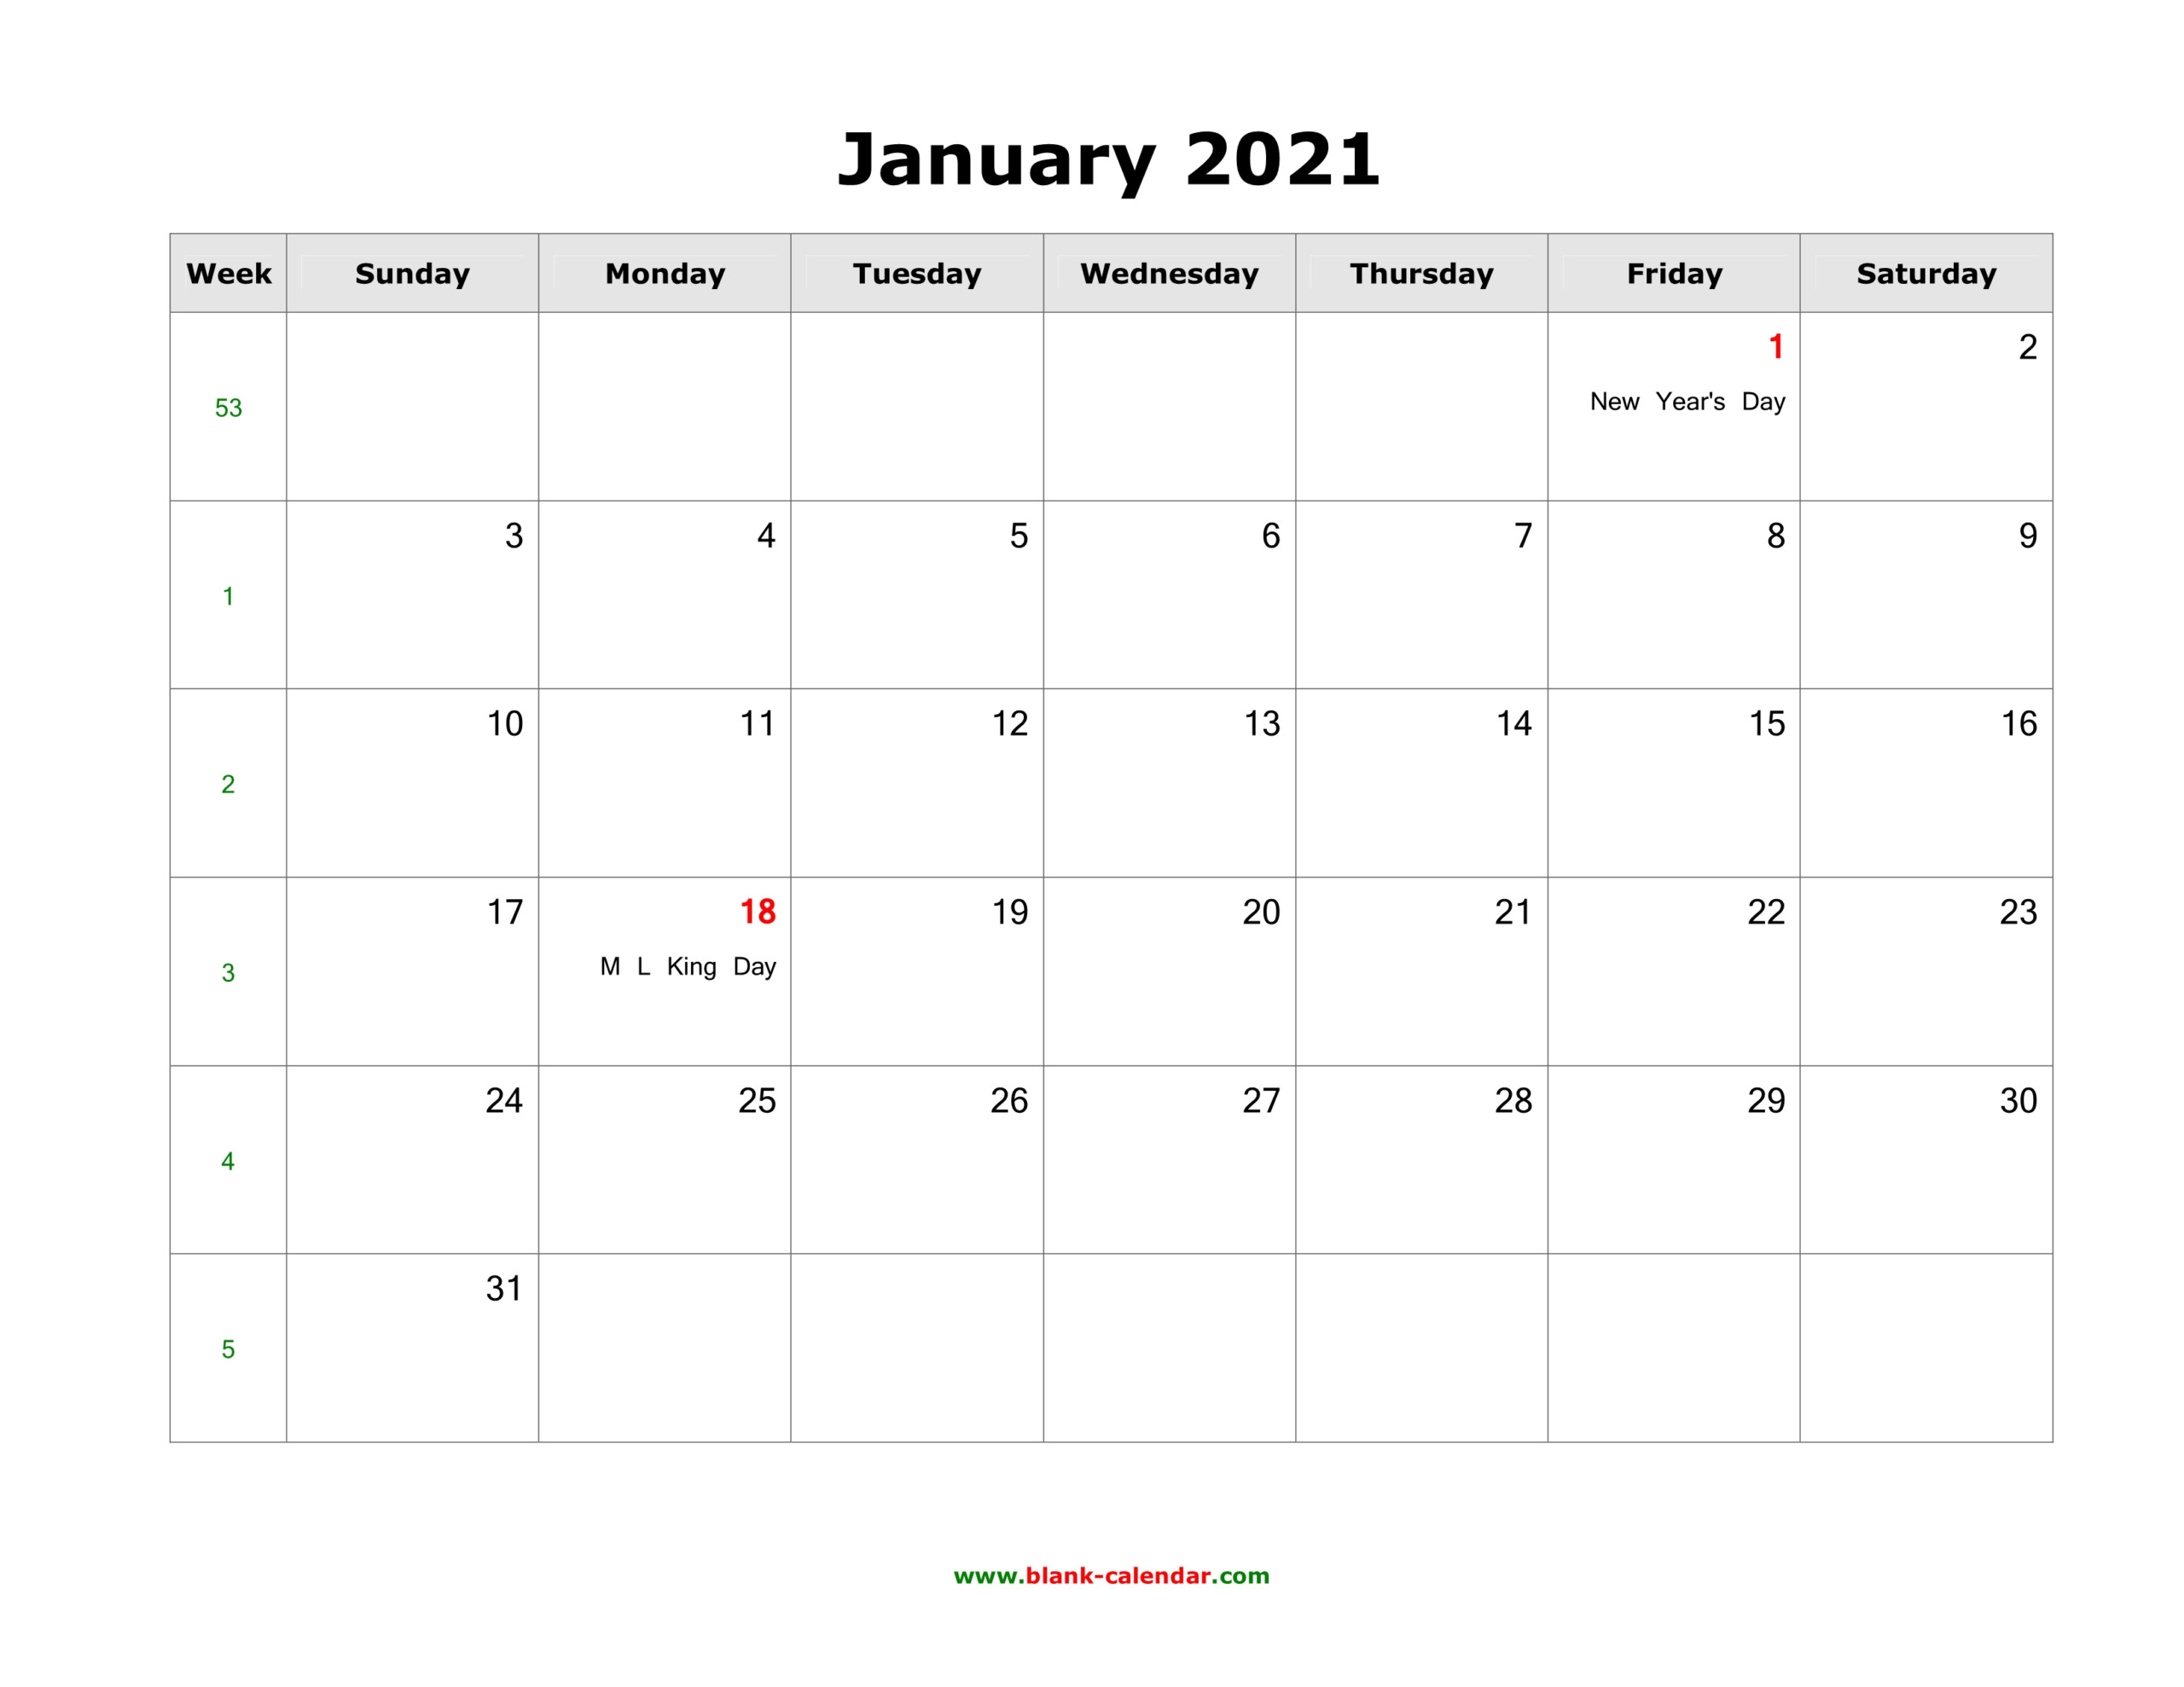 January 2021 Blank Calendar | Free Download Calendar Templates